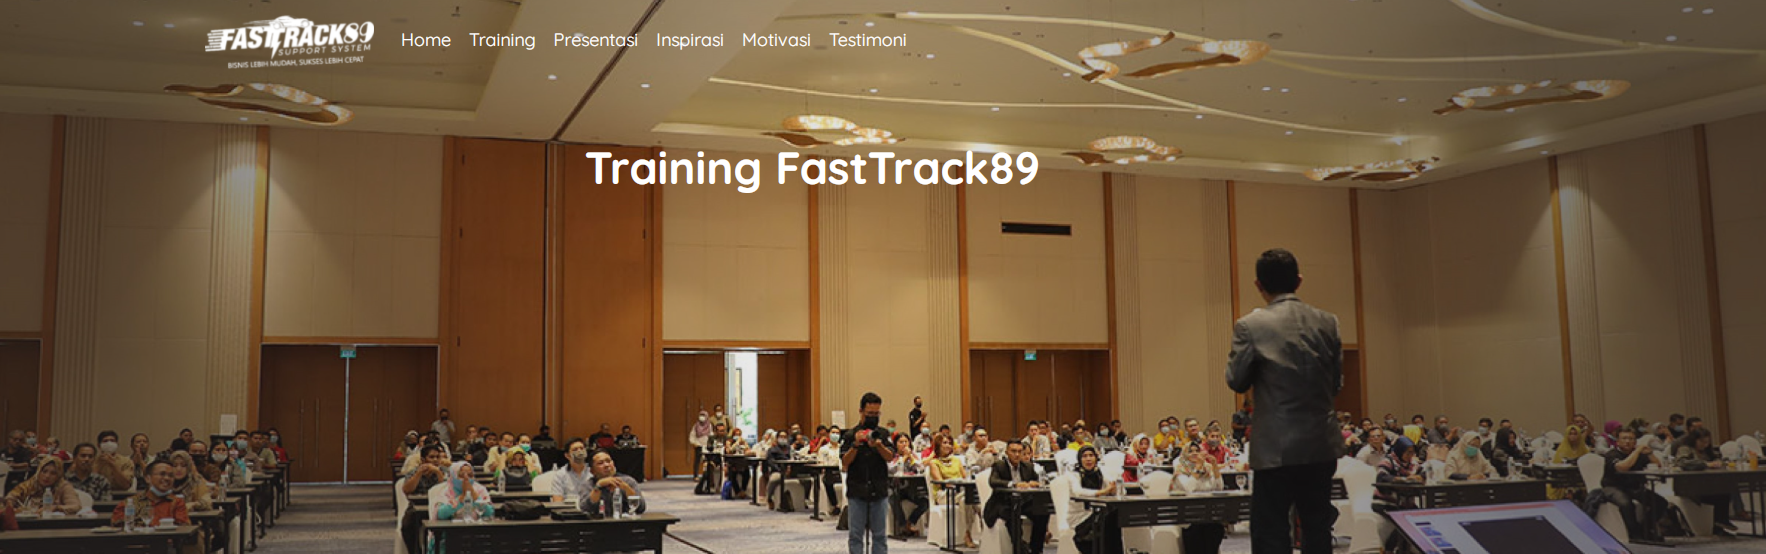 Training Fasttrack89 Support System